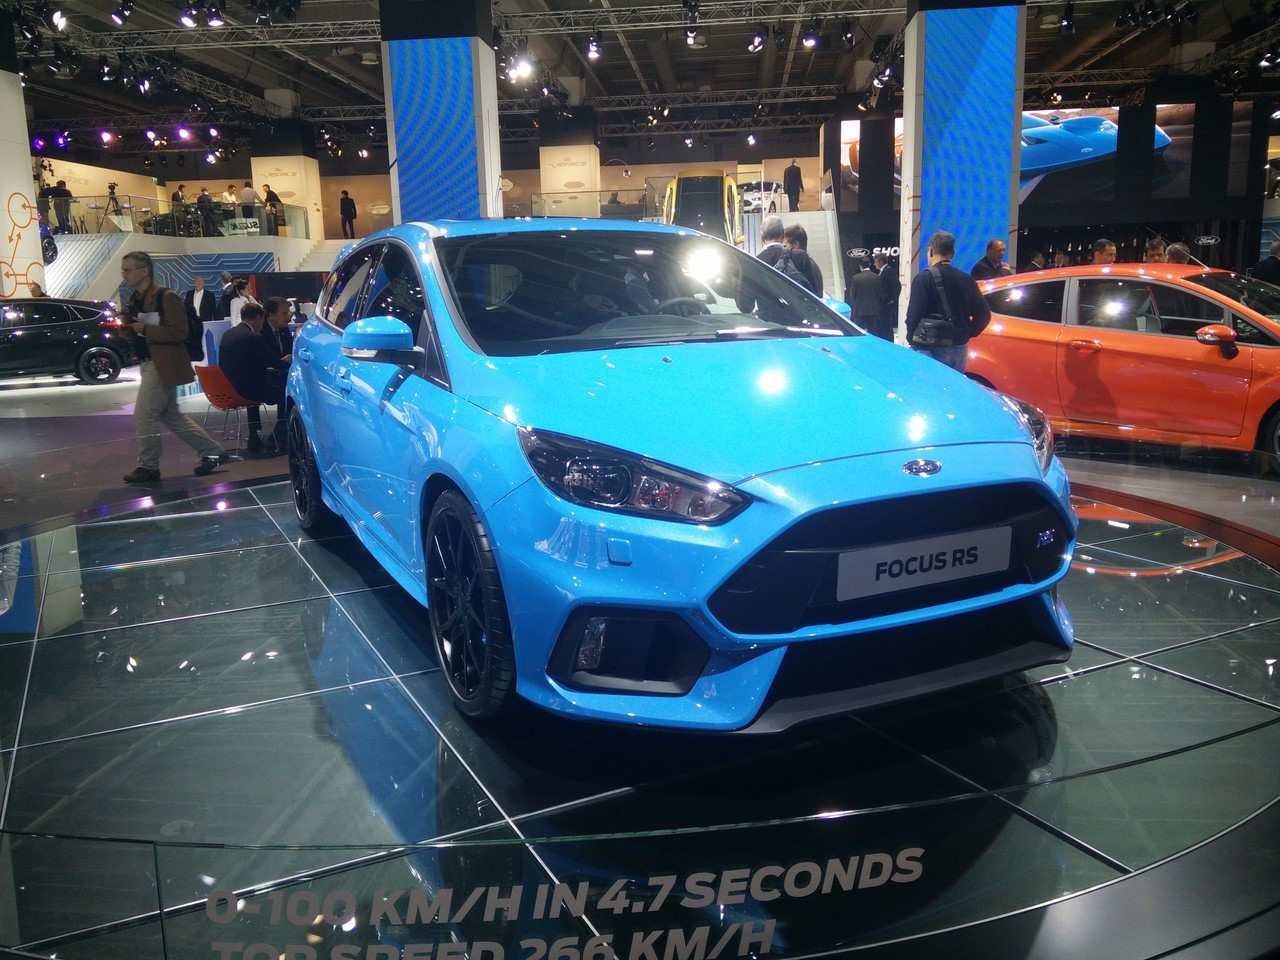 prix ford focus rs 2016 38 600 euros la nouvelle focus rs l 39 argus. Black Bedroom Furniture Sets. Home Design Ideas